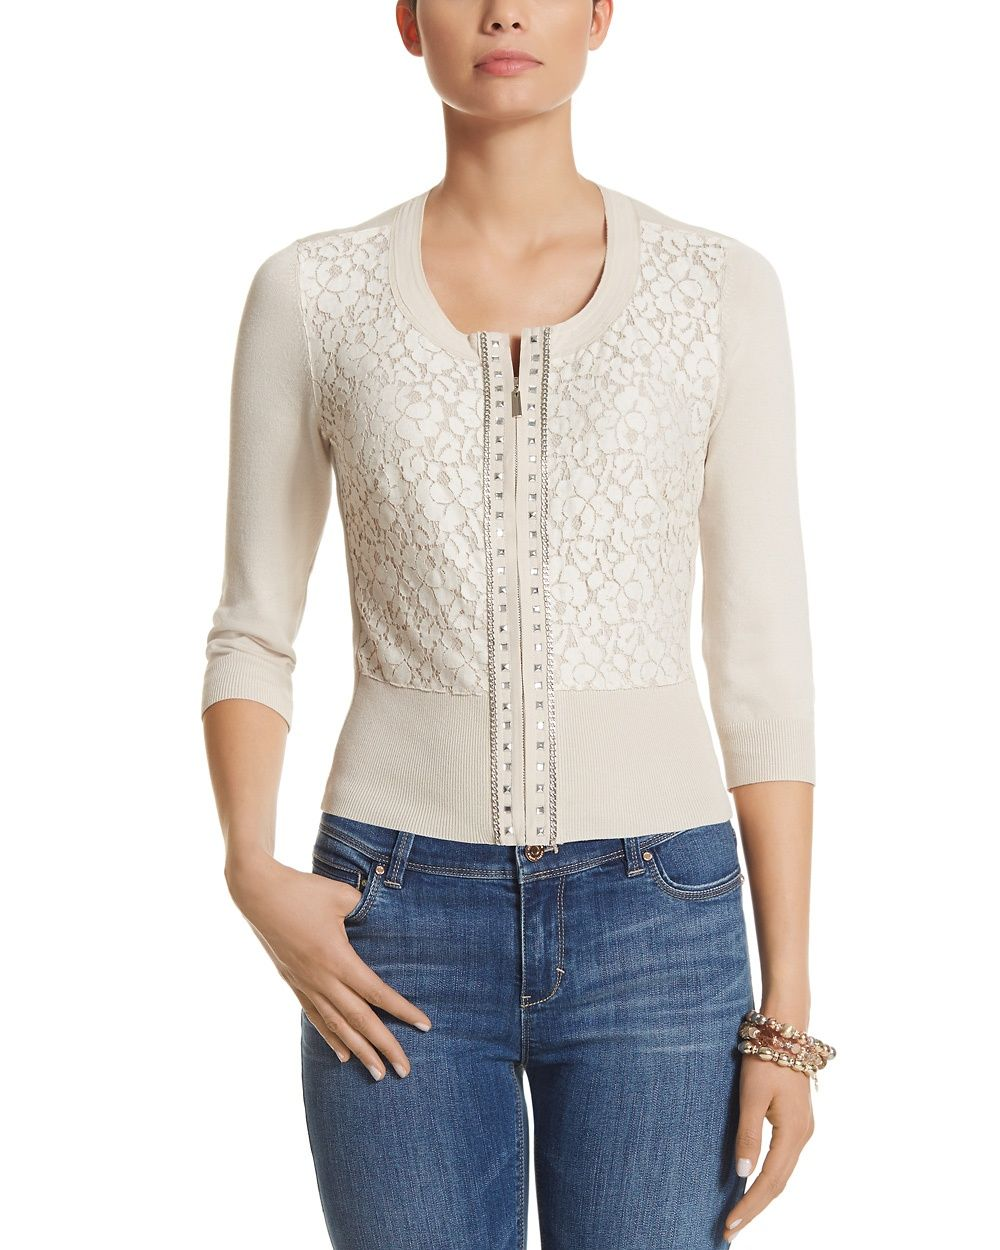 Gorgeous cardigan with lace overlay in front that is a beautiful ...